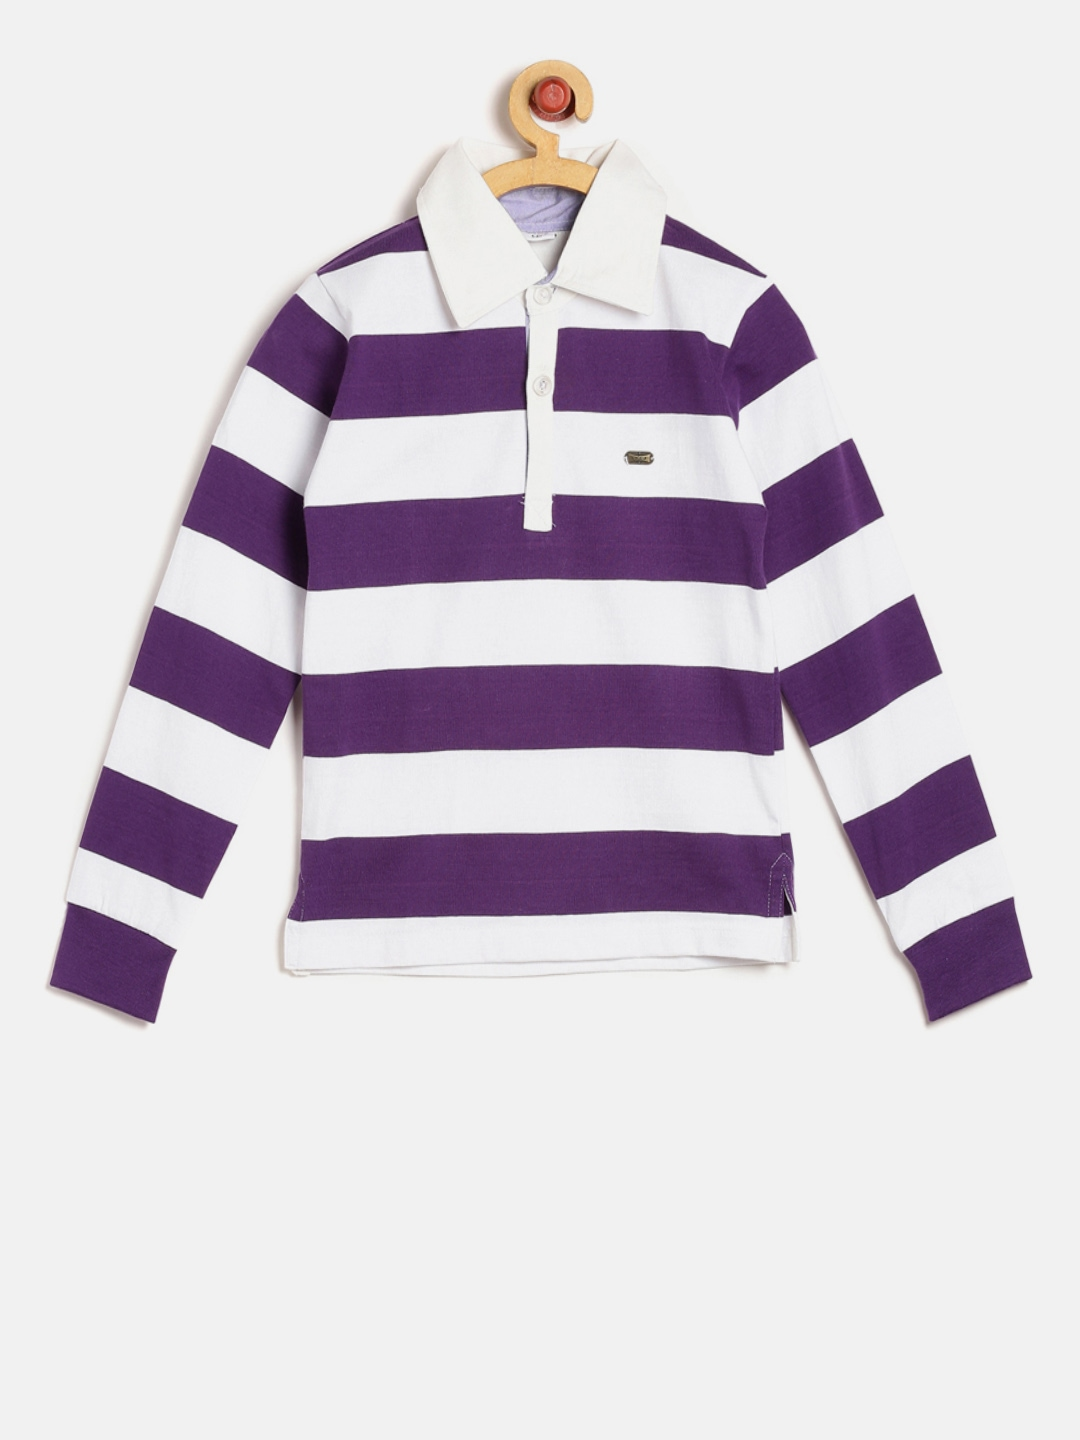 Gkidz boys purple white striped polo collar t shirt for Purple and black striped t shirt